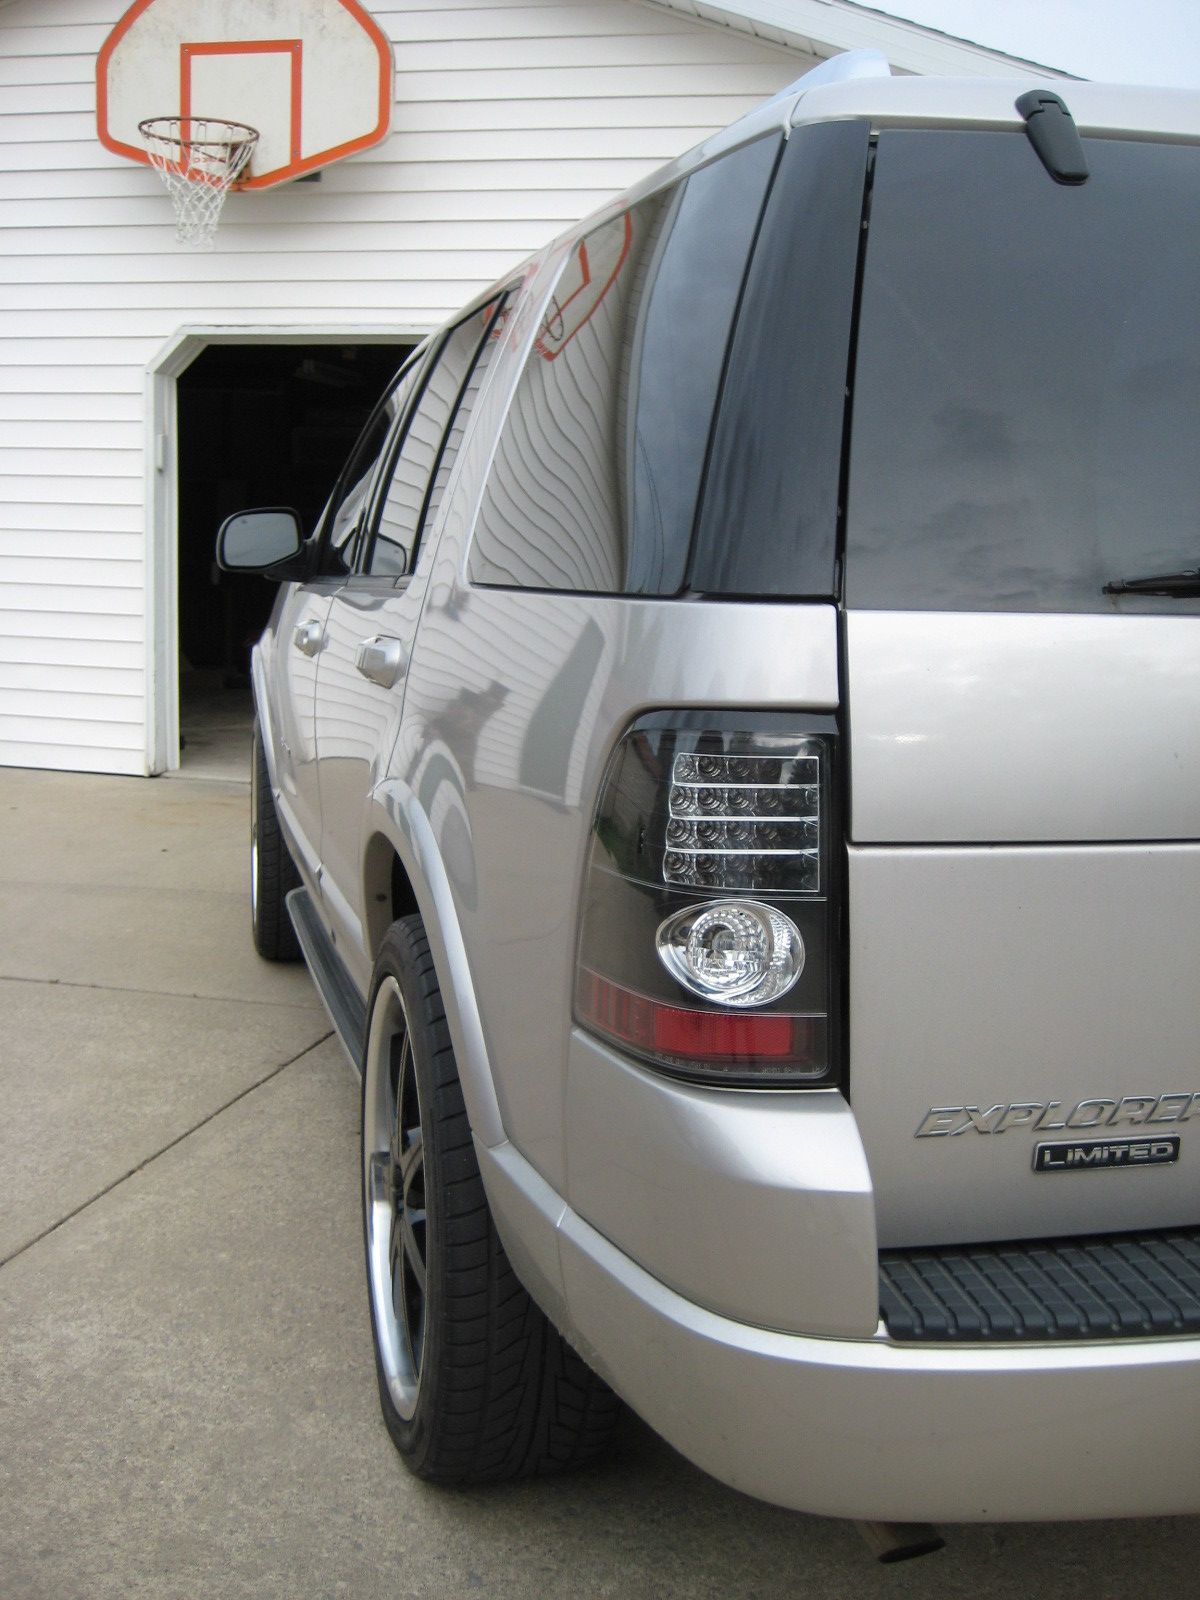 Pin By Carmelo Flores On 04 Ford Explorer In 2021 Ford Explorer Ford Expedition Ford